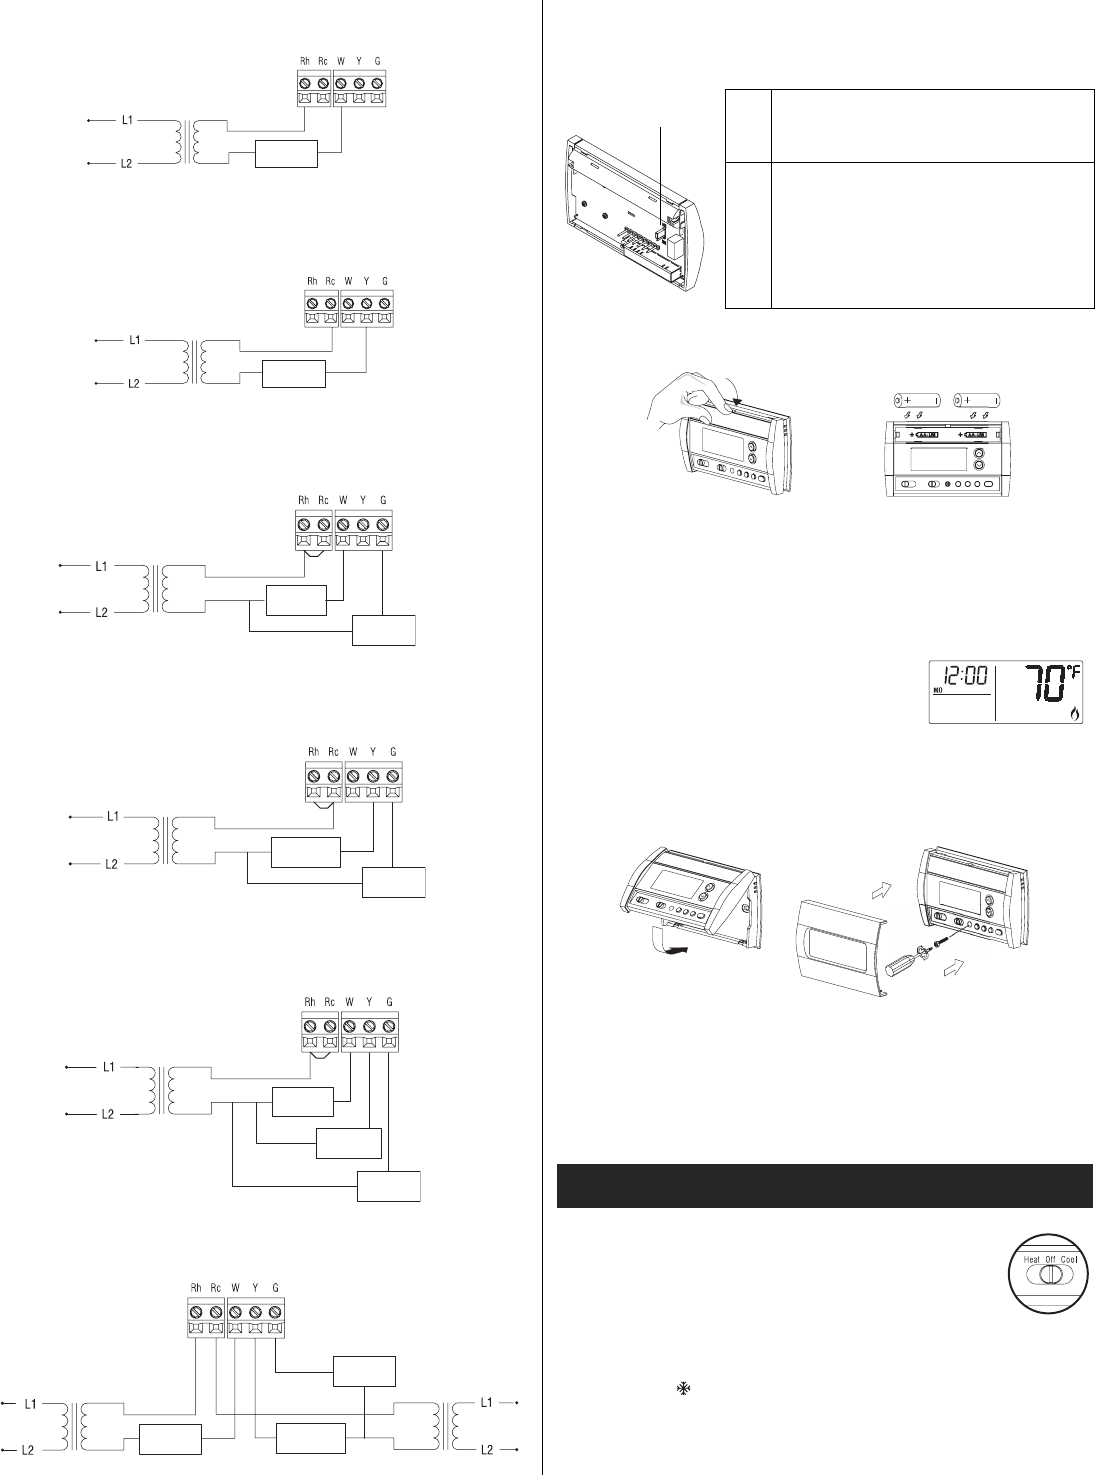 Th8000 Wiring Diagram in addition Radiant Heat Thermostat Wiring Diagram Free Download further Installing Idevices Wall Switch Single in addition Lennox Furnace Thermostat Wiring Diagram additionally Y Plan Biflow Wiring Wire Diagrams Easy Simple Detail Ideas General Ex le Best Routing Install Ex le Setup Hopkins Trailer Honeywell Wiring Diagram. on diy honeywell thermostat wiring